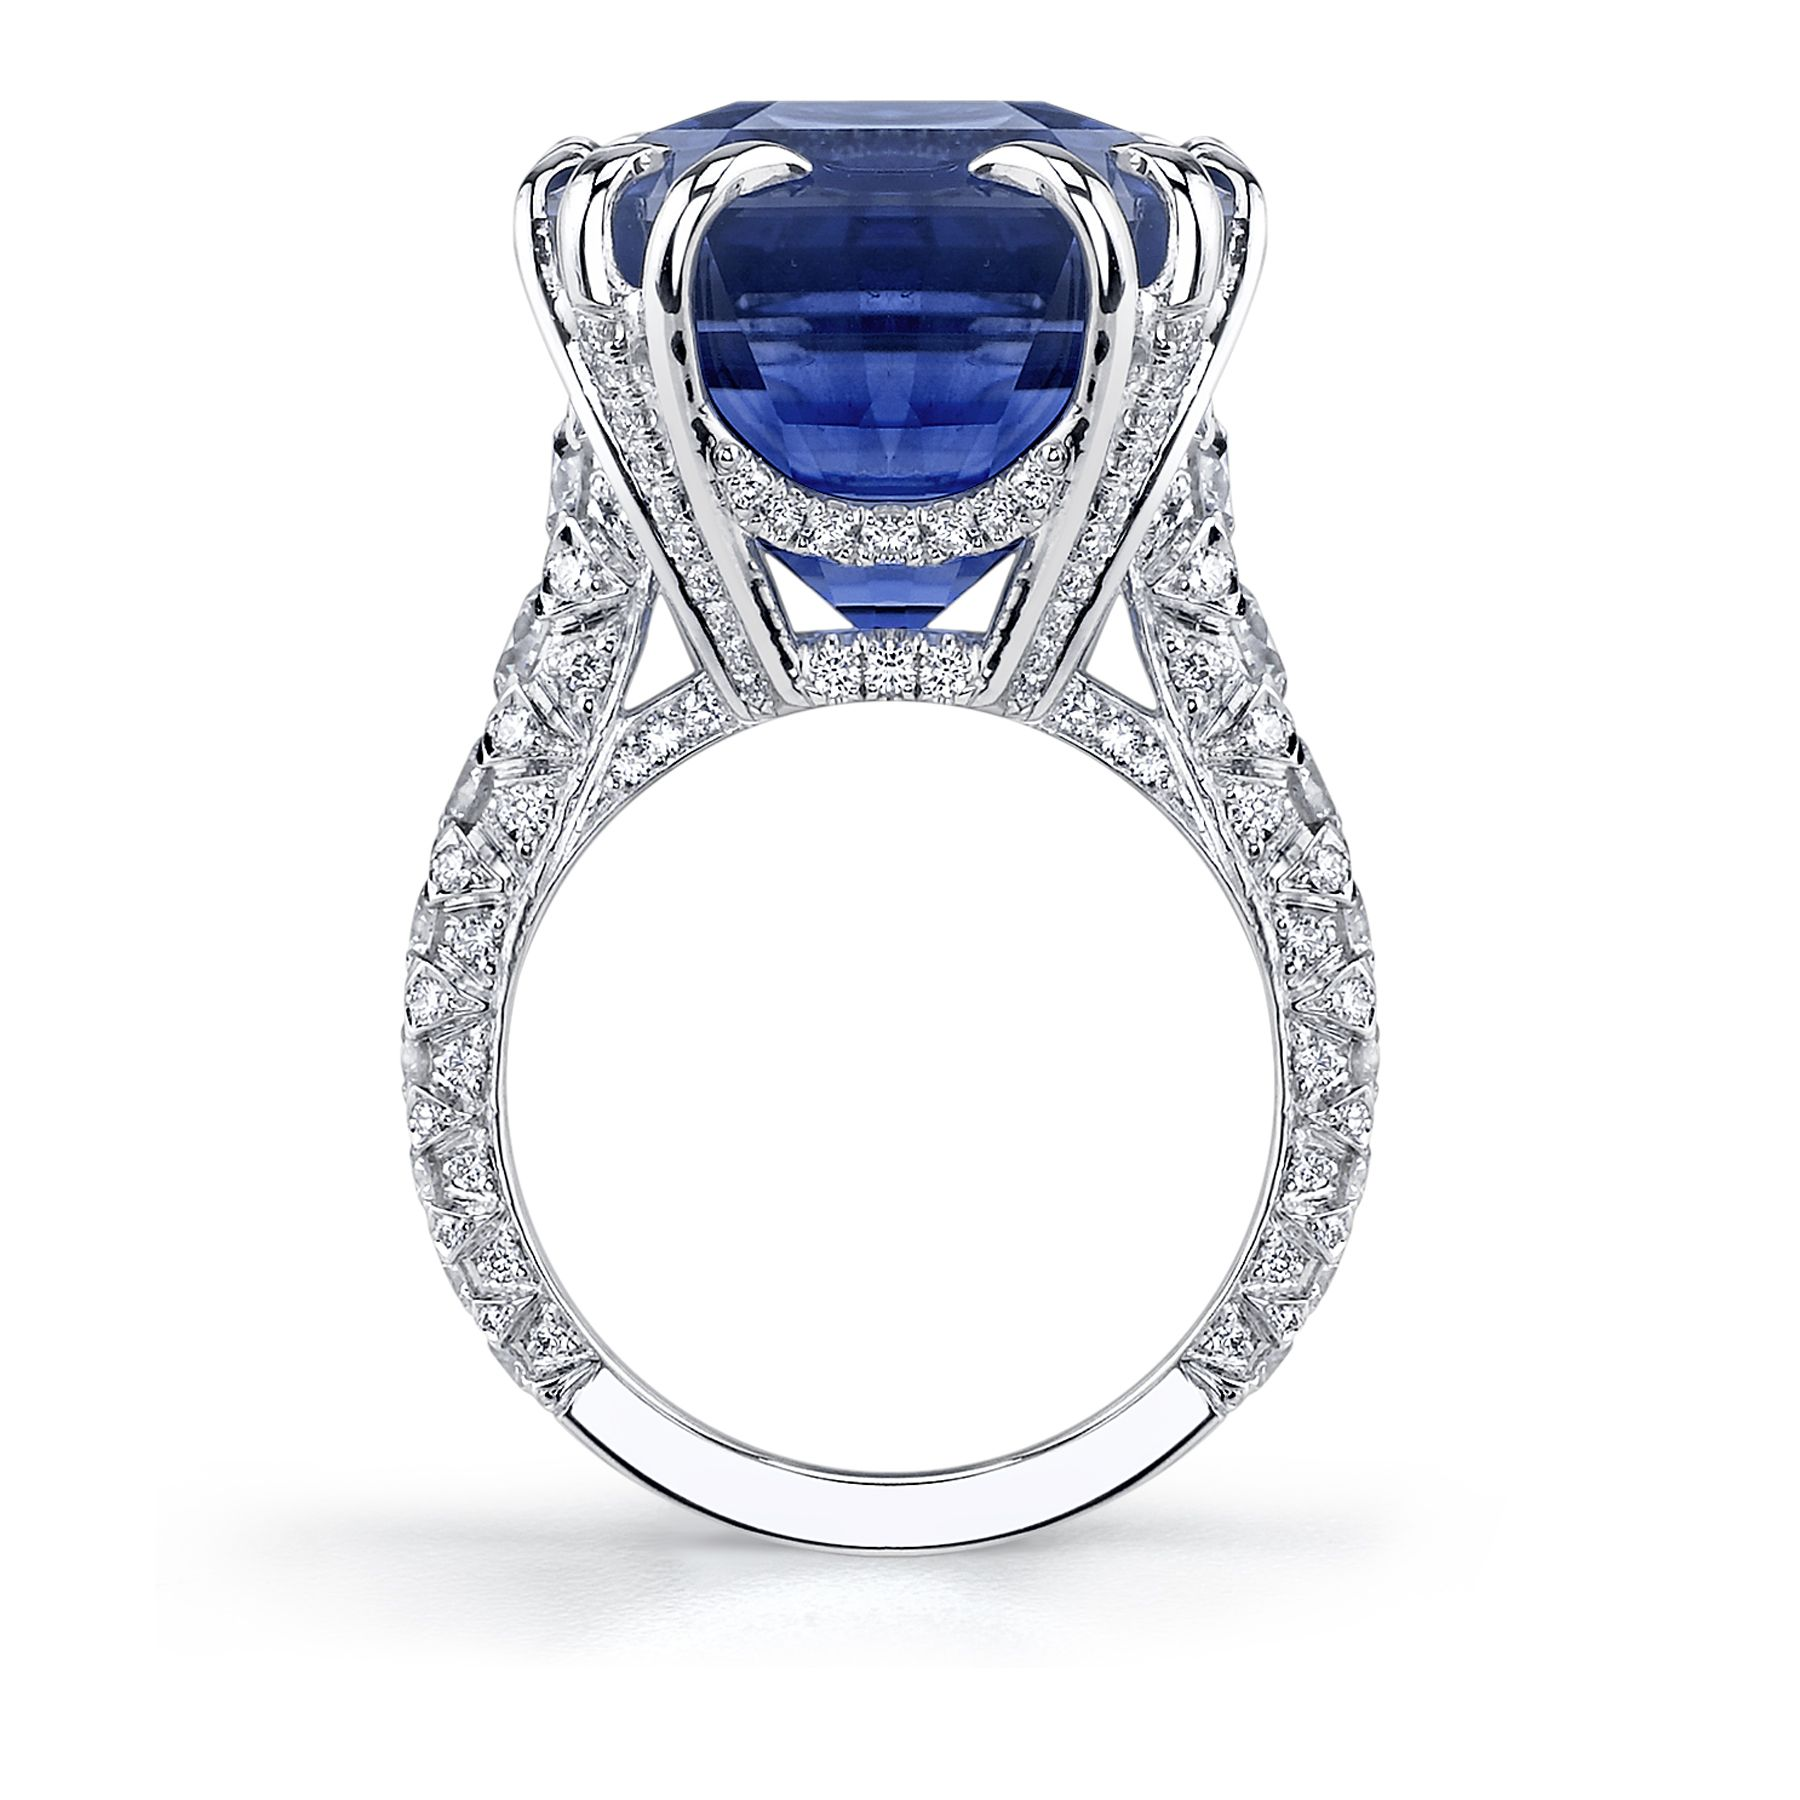 dsc limit paw octagon rock ring topaz new swiss diamond with the nodeform blue cut in sky is